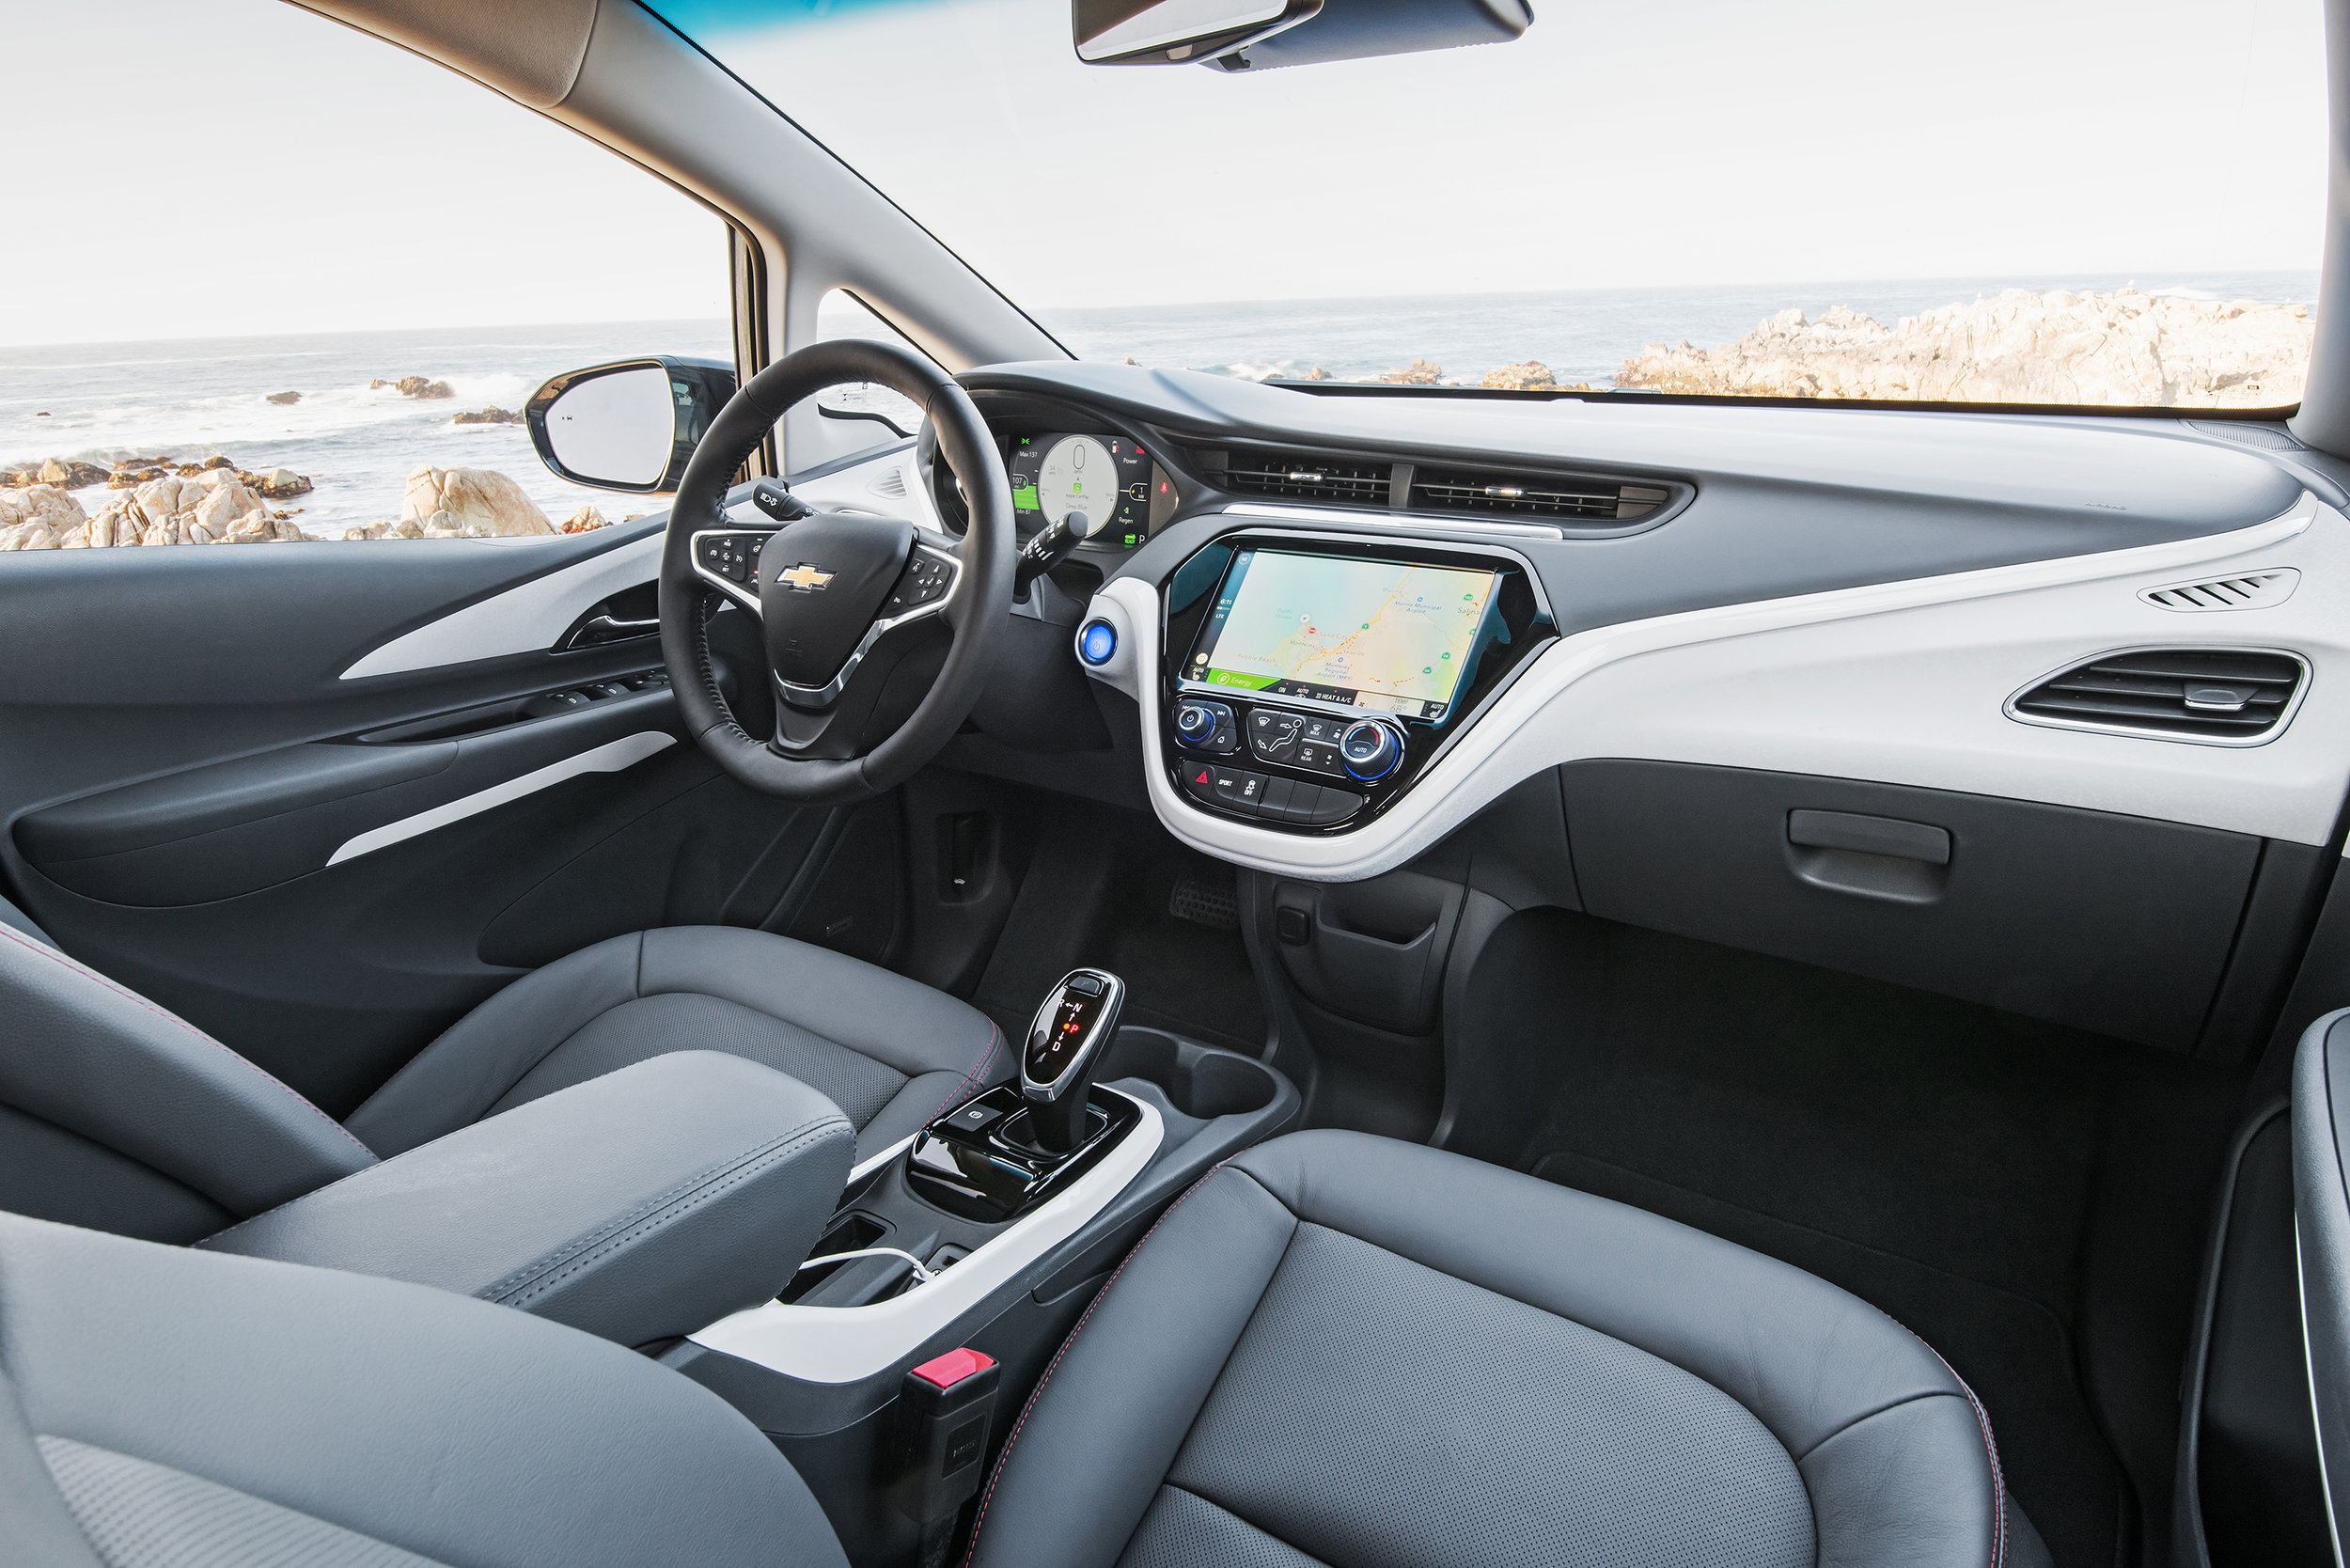 2017 Bolt EV Premier interior (source: media.gm.com)